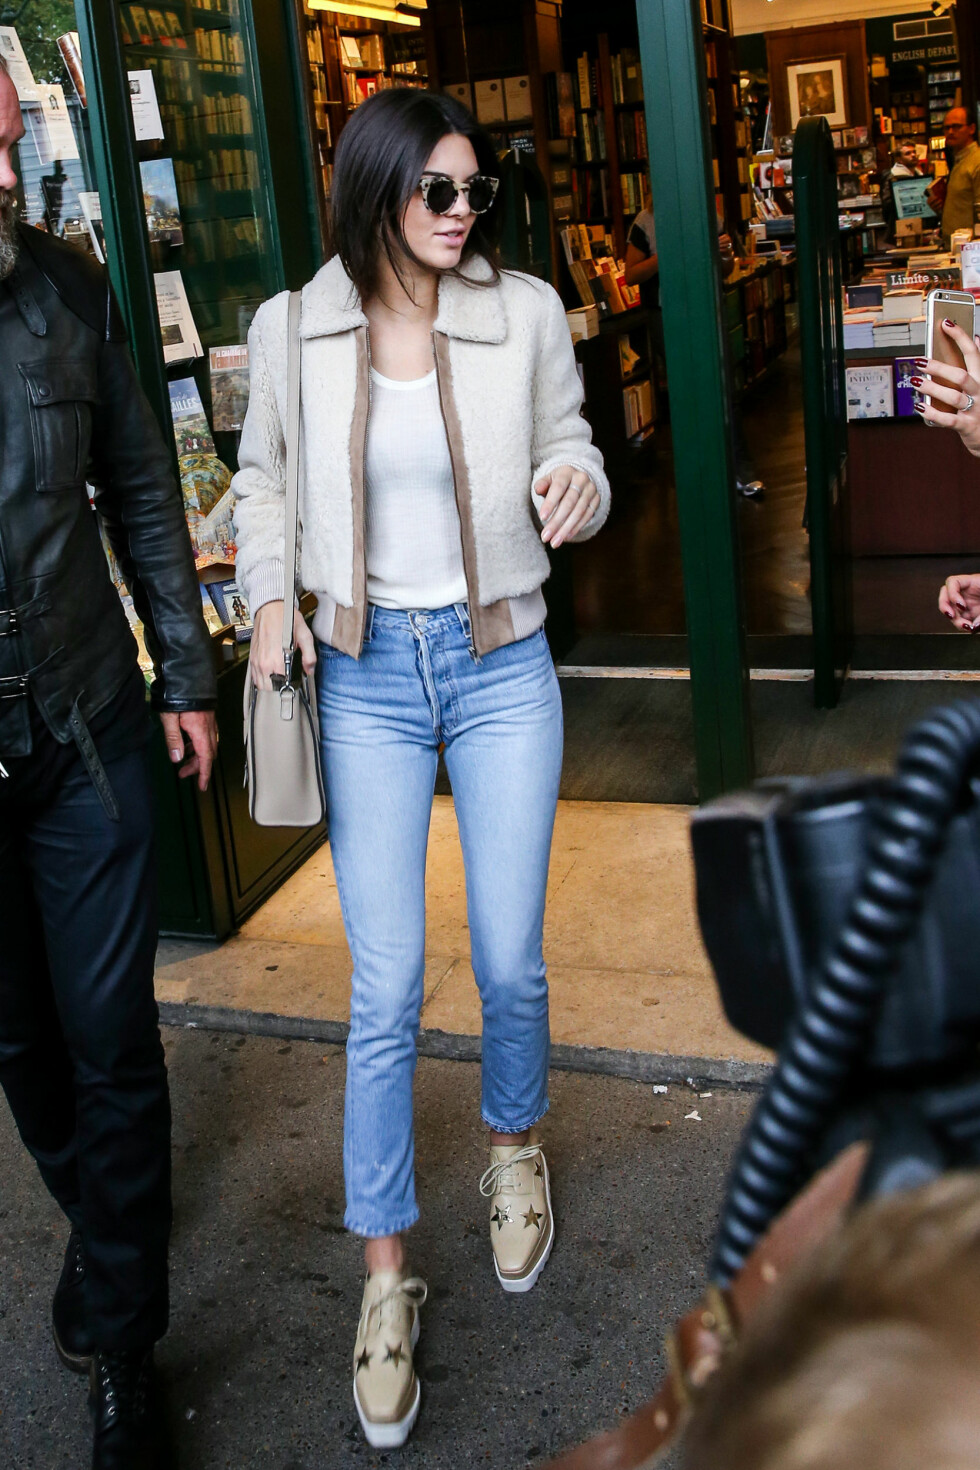 PÅ SHOPPING: Kendall Jenner out and about i Paris i oktober. Foto: NTB Scanpix